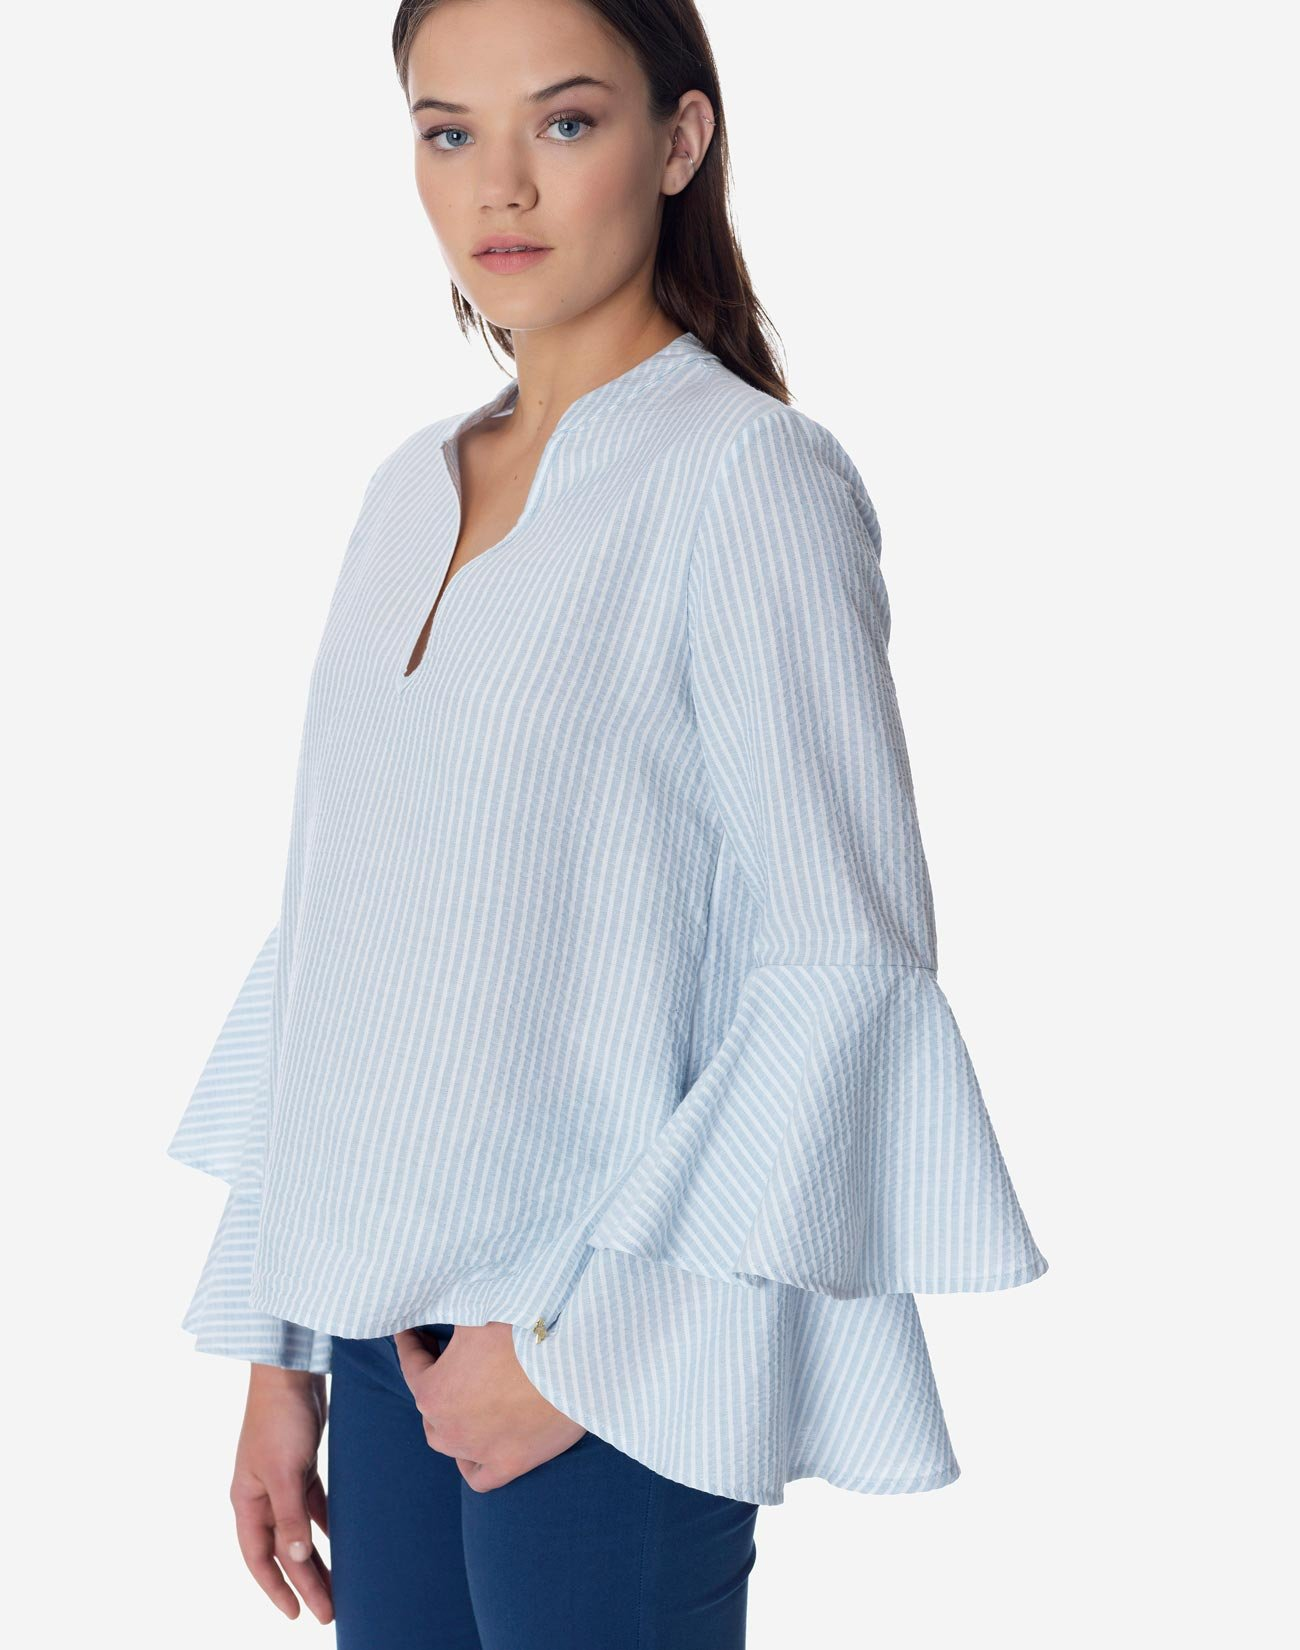 Striped top with double ruffles